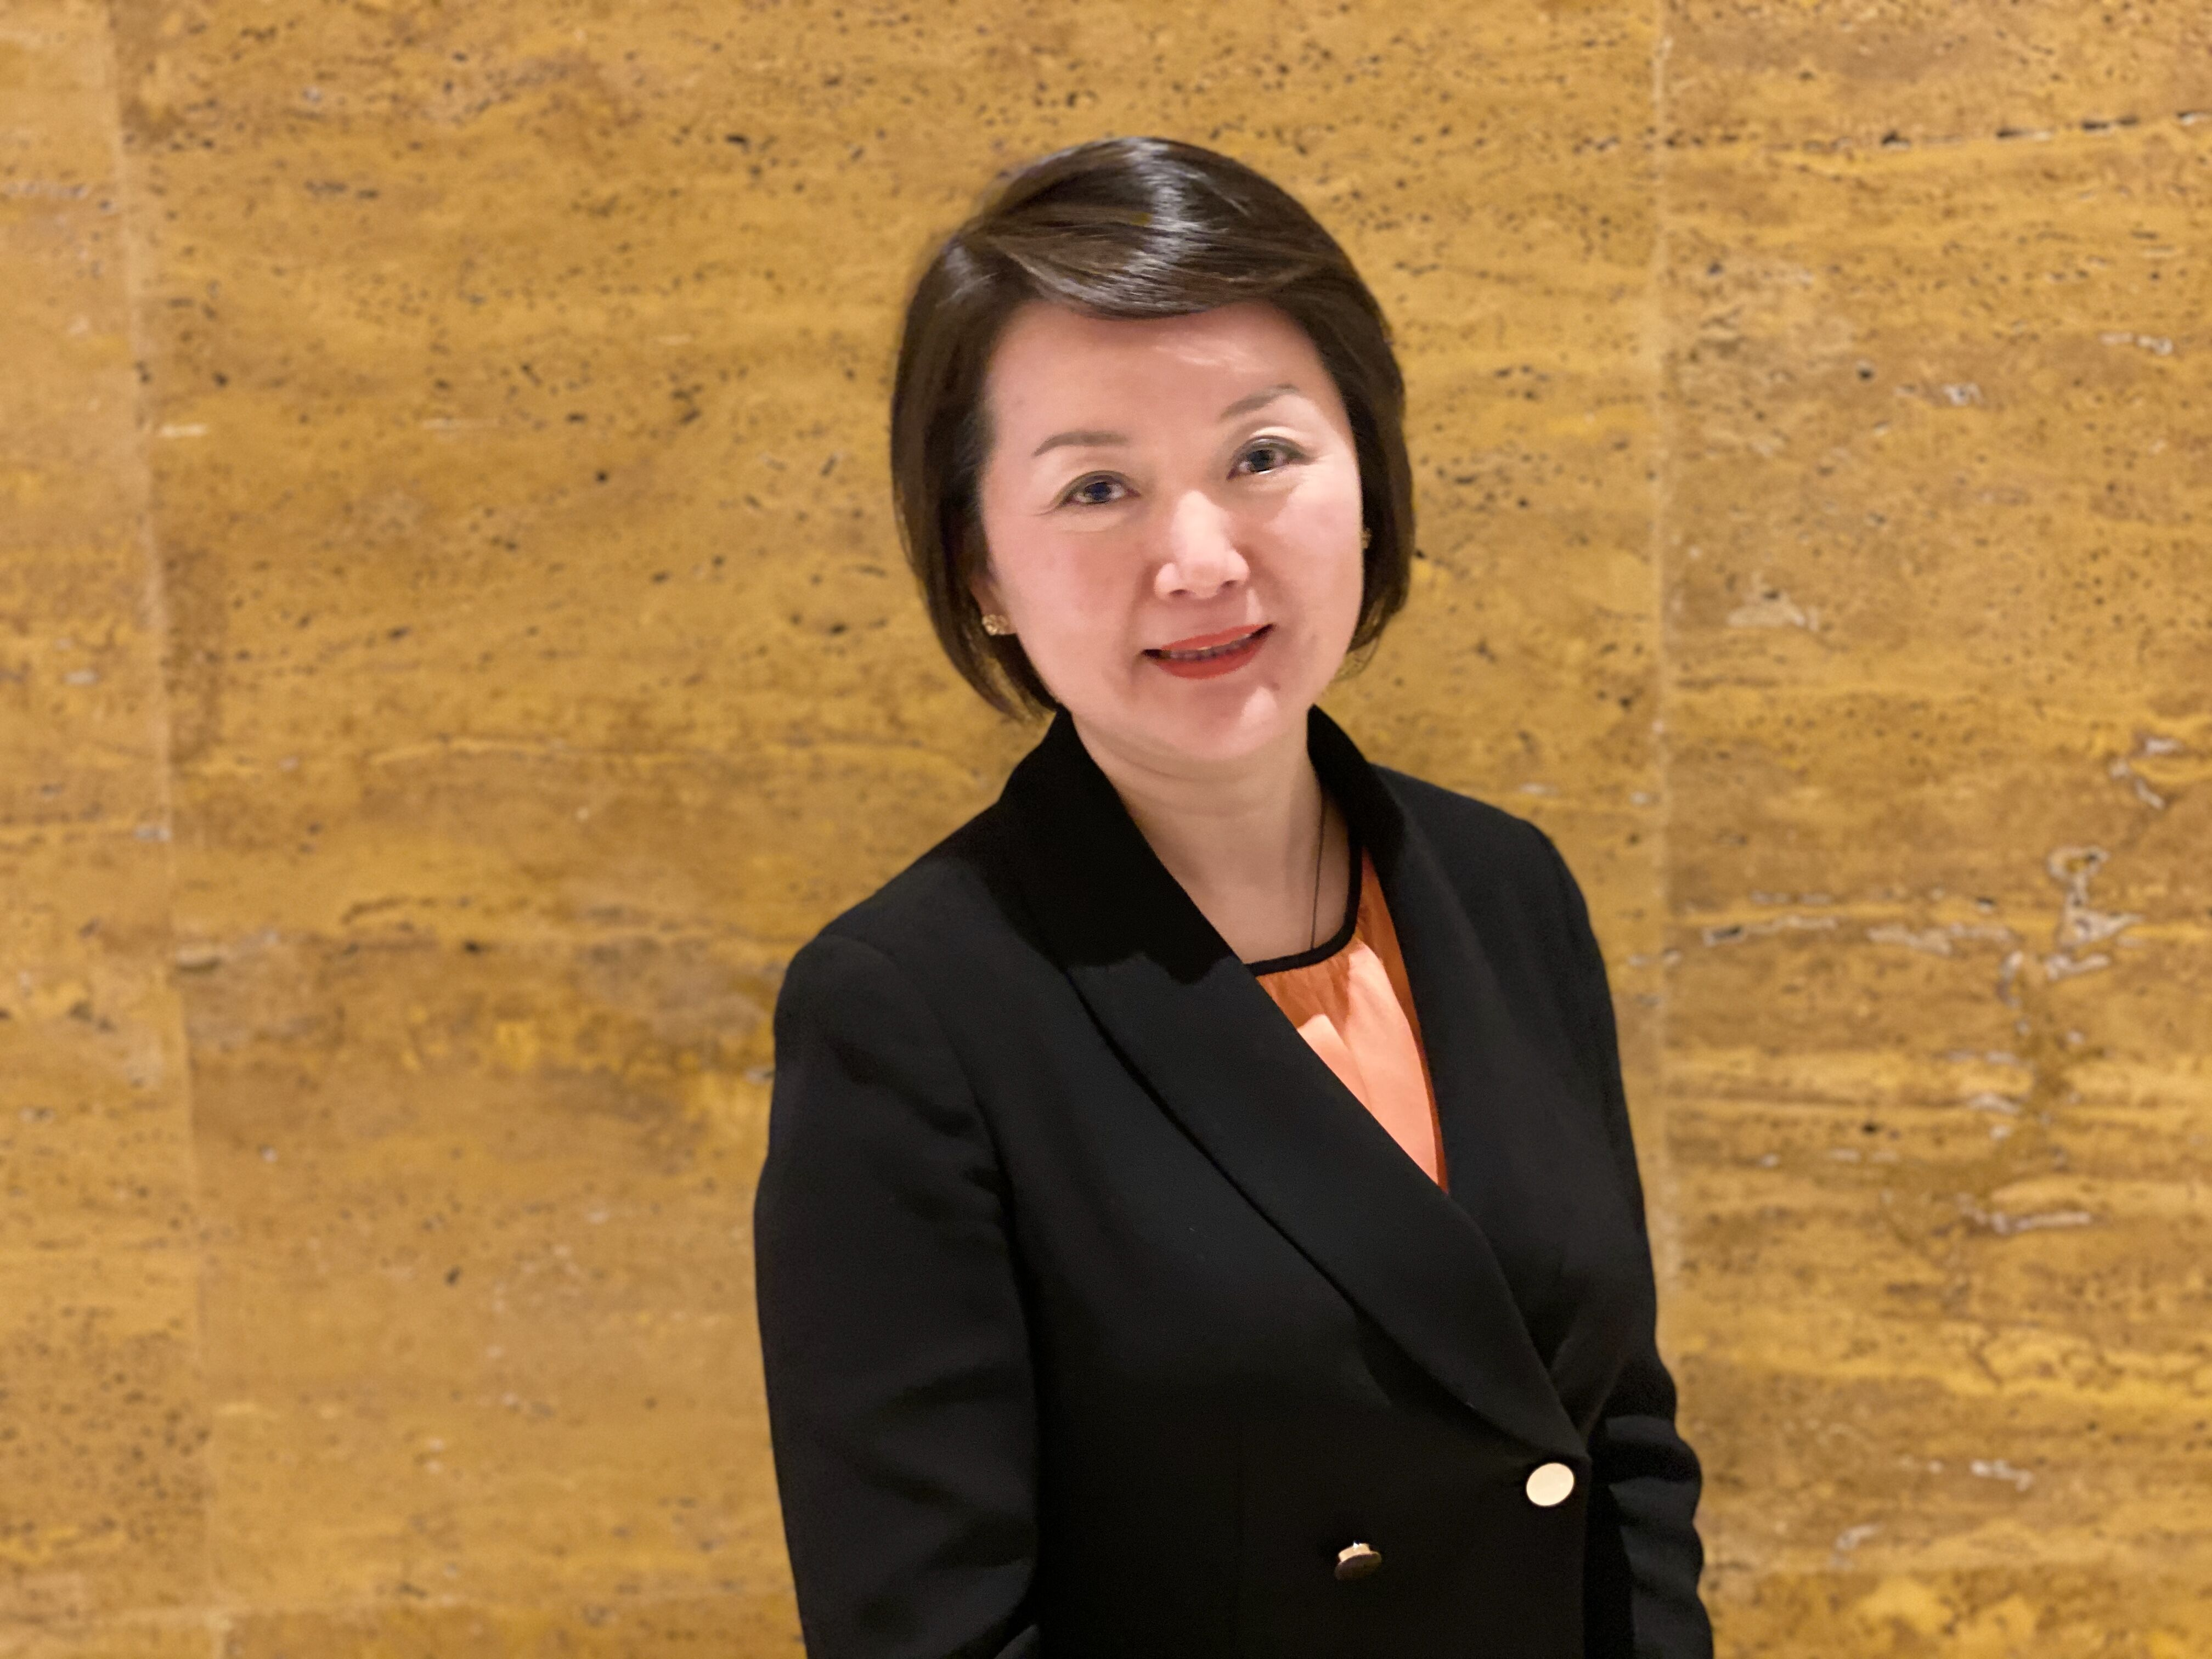 ONYX retains the best of Thailand but more than just Thai hotels: Gina Wo